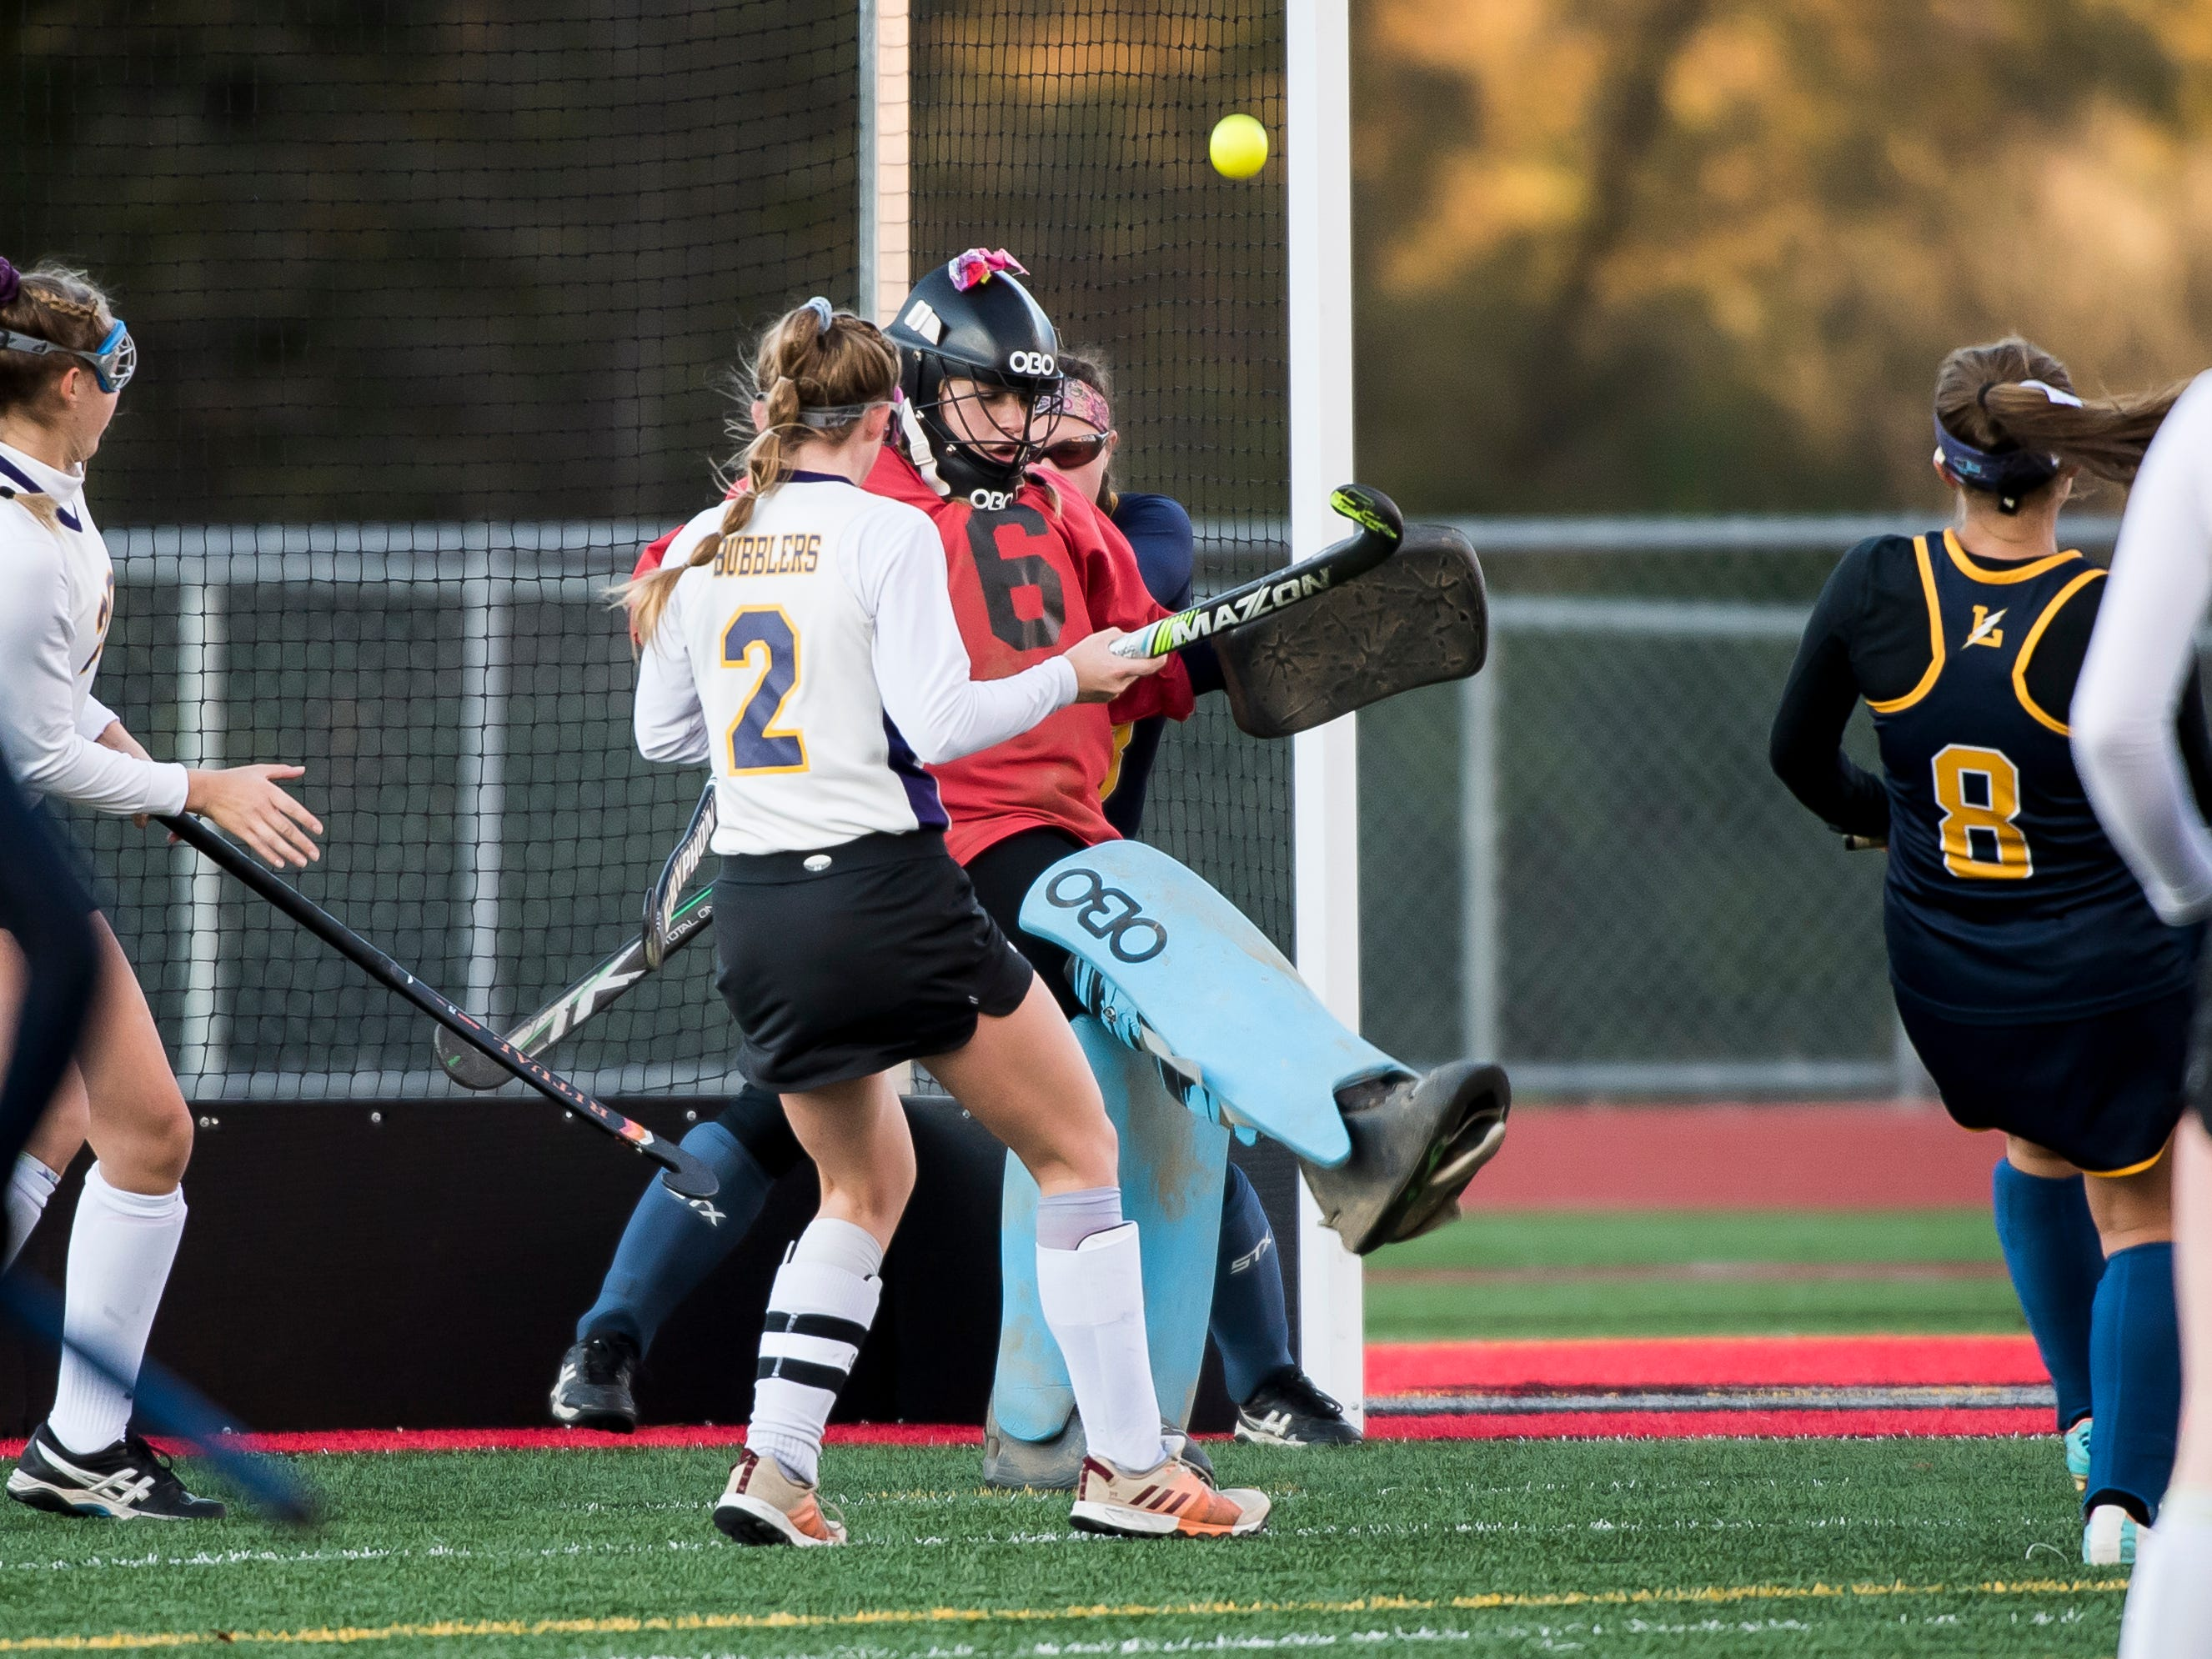 Littlestown goal keeper Ariana Grabowicz kicks away a Boiling Springs shot during a PIAA District III first round game at Bermudian Springs High School on Wednesday, October 24, 2018. The Bolts fell 2-0.